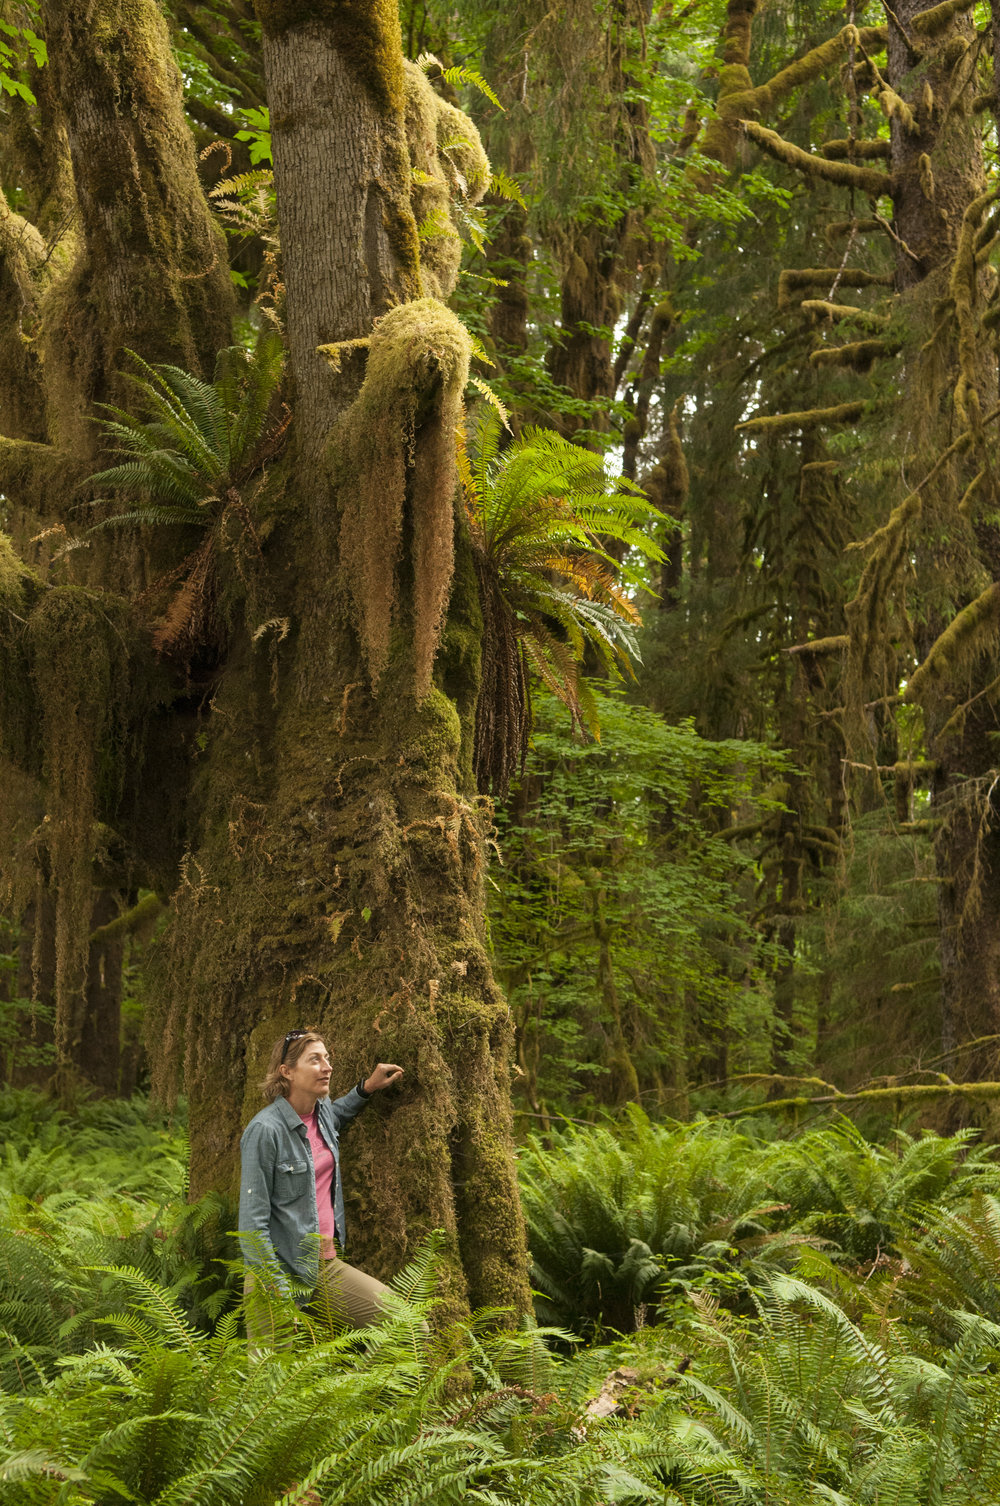 Melissa Garvey exploring in the Hoh Rainforest. Photo by Nikolaj Lasbo/TNC